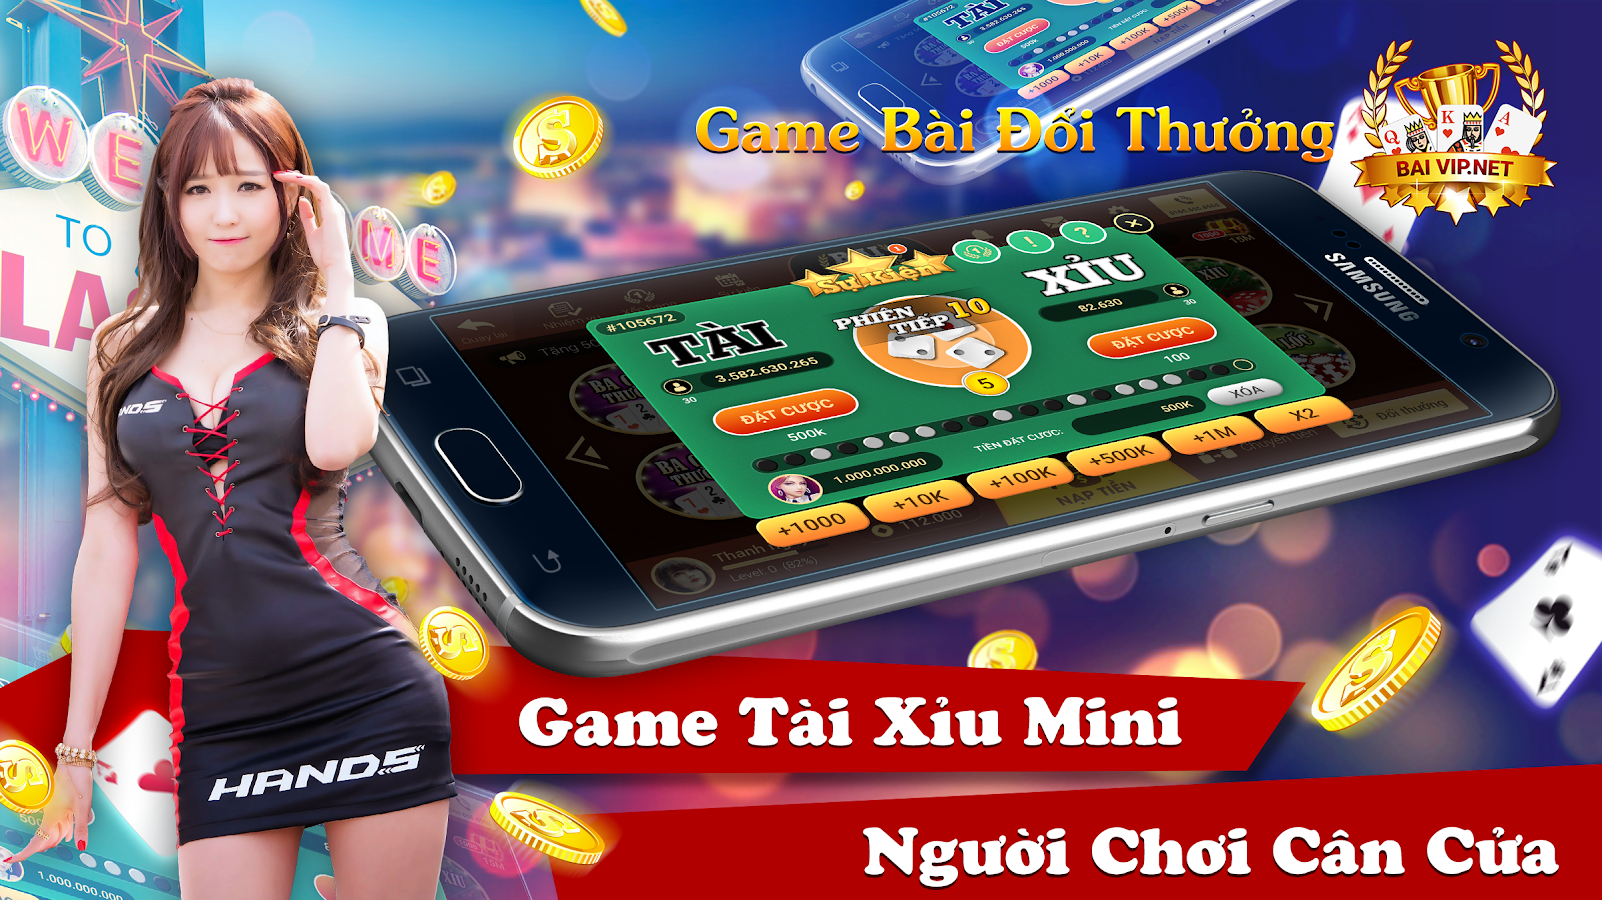 Game Bài Vip Online Screenshot 4